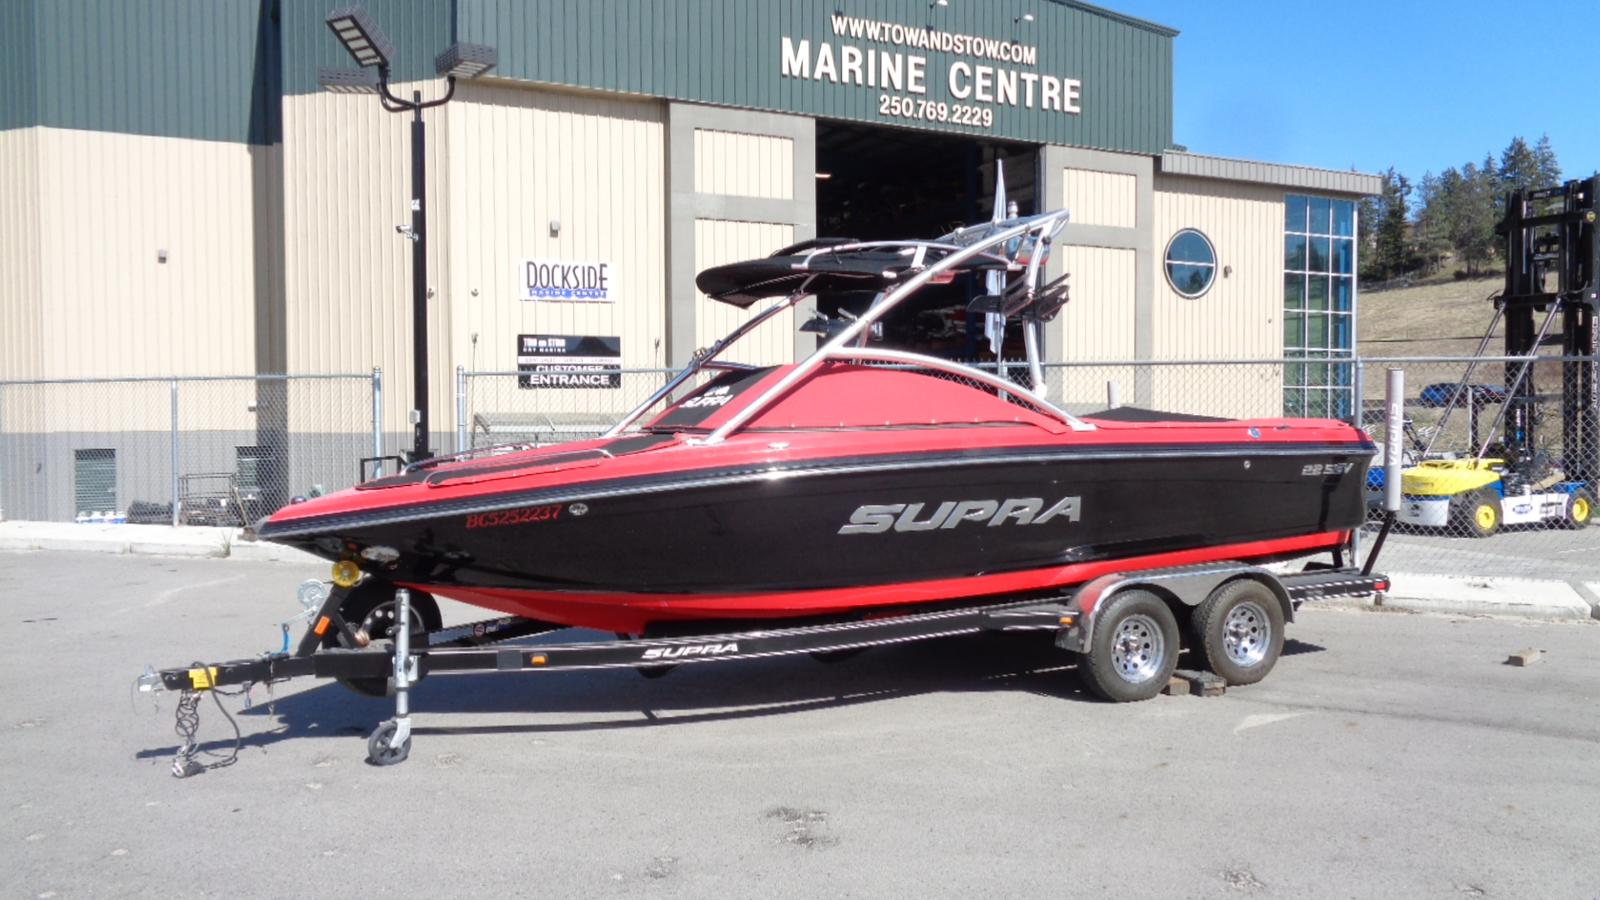 For Sale: 2007 Supra 22 Ssv 24ft<br/>Dockside Marine Centre, LTD.